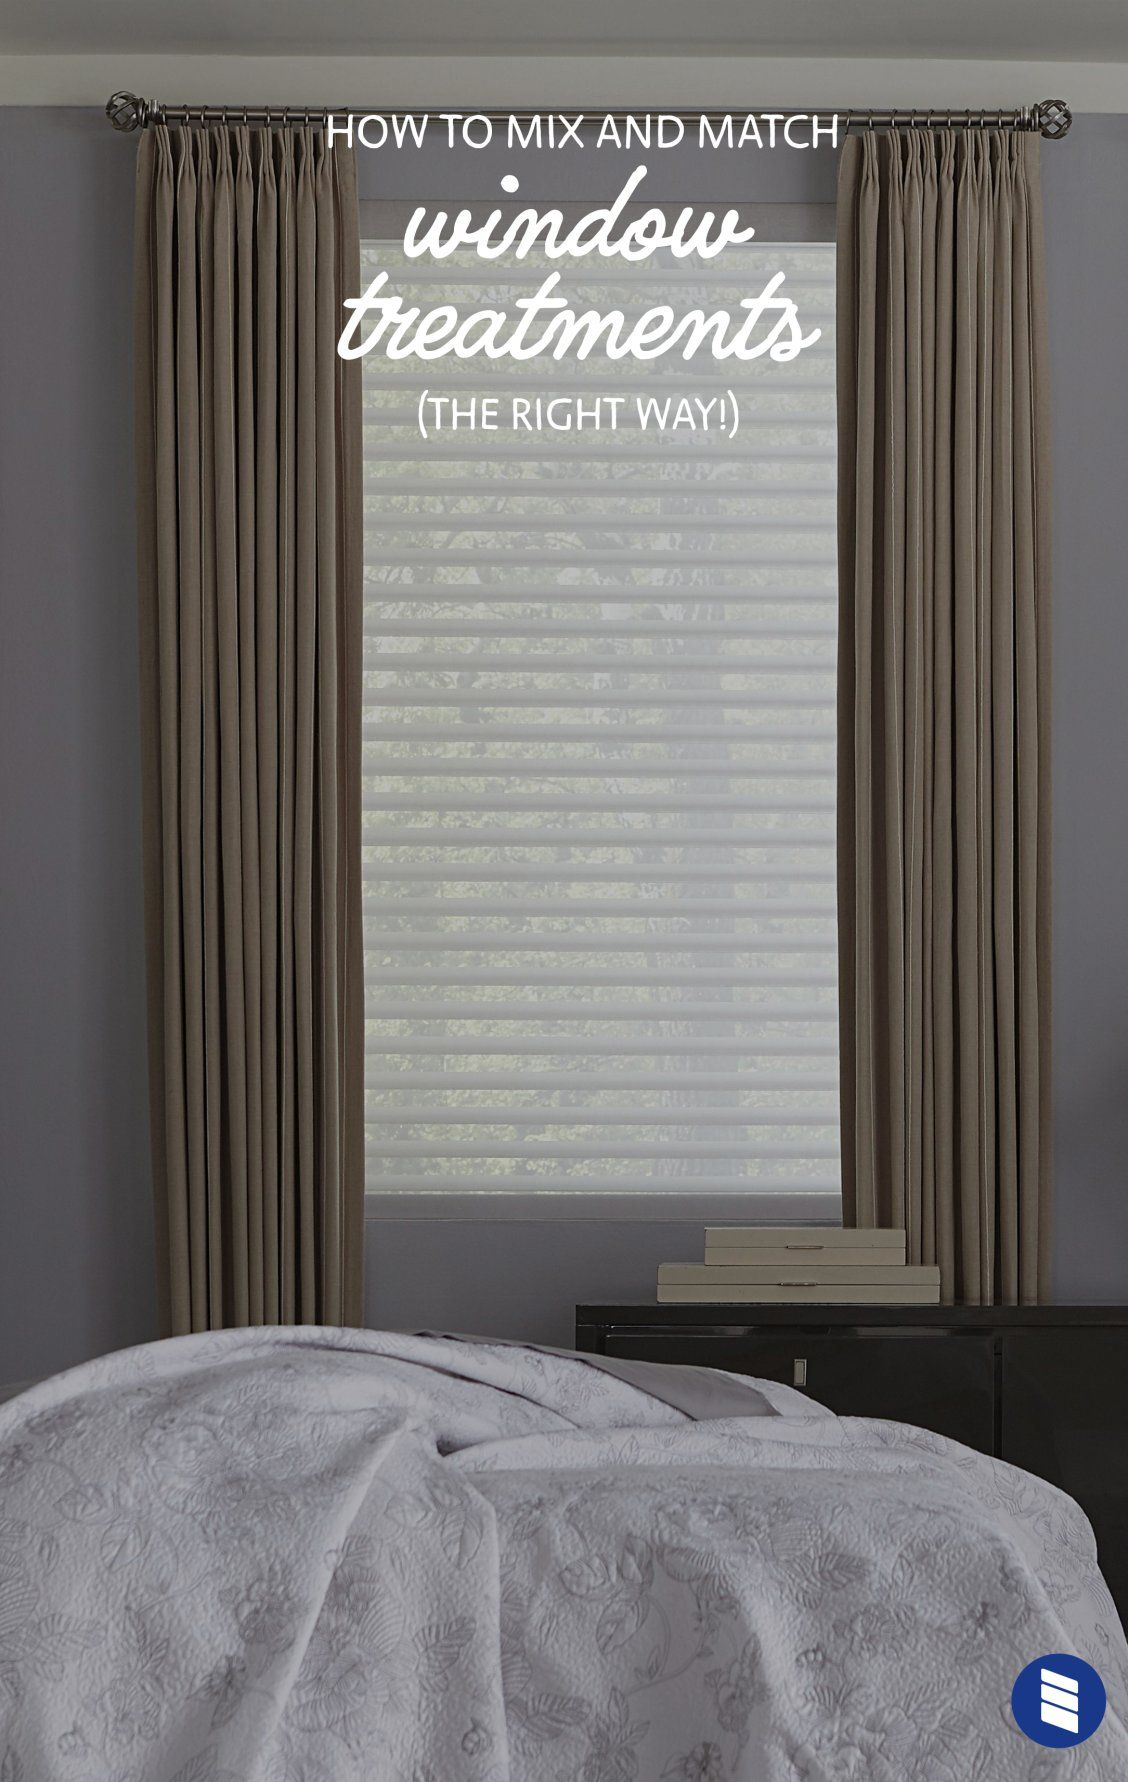 How To Layer Window Treatments Blinds Com Curtains And Blinds Together Curtains With Blinds Bedroom Curtains With Blinds